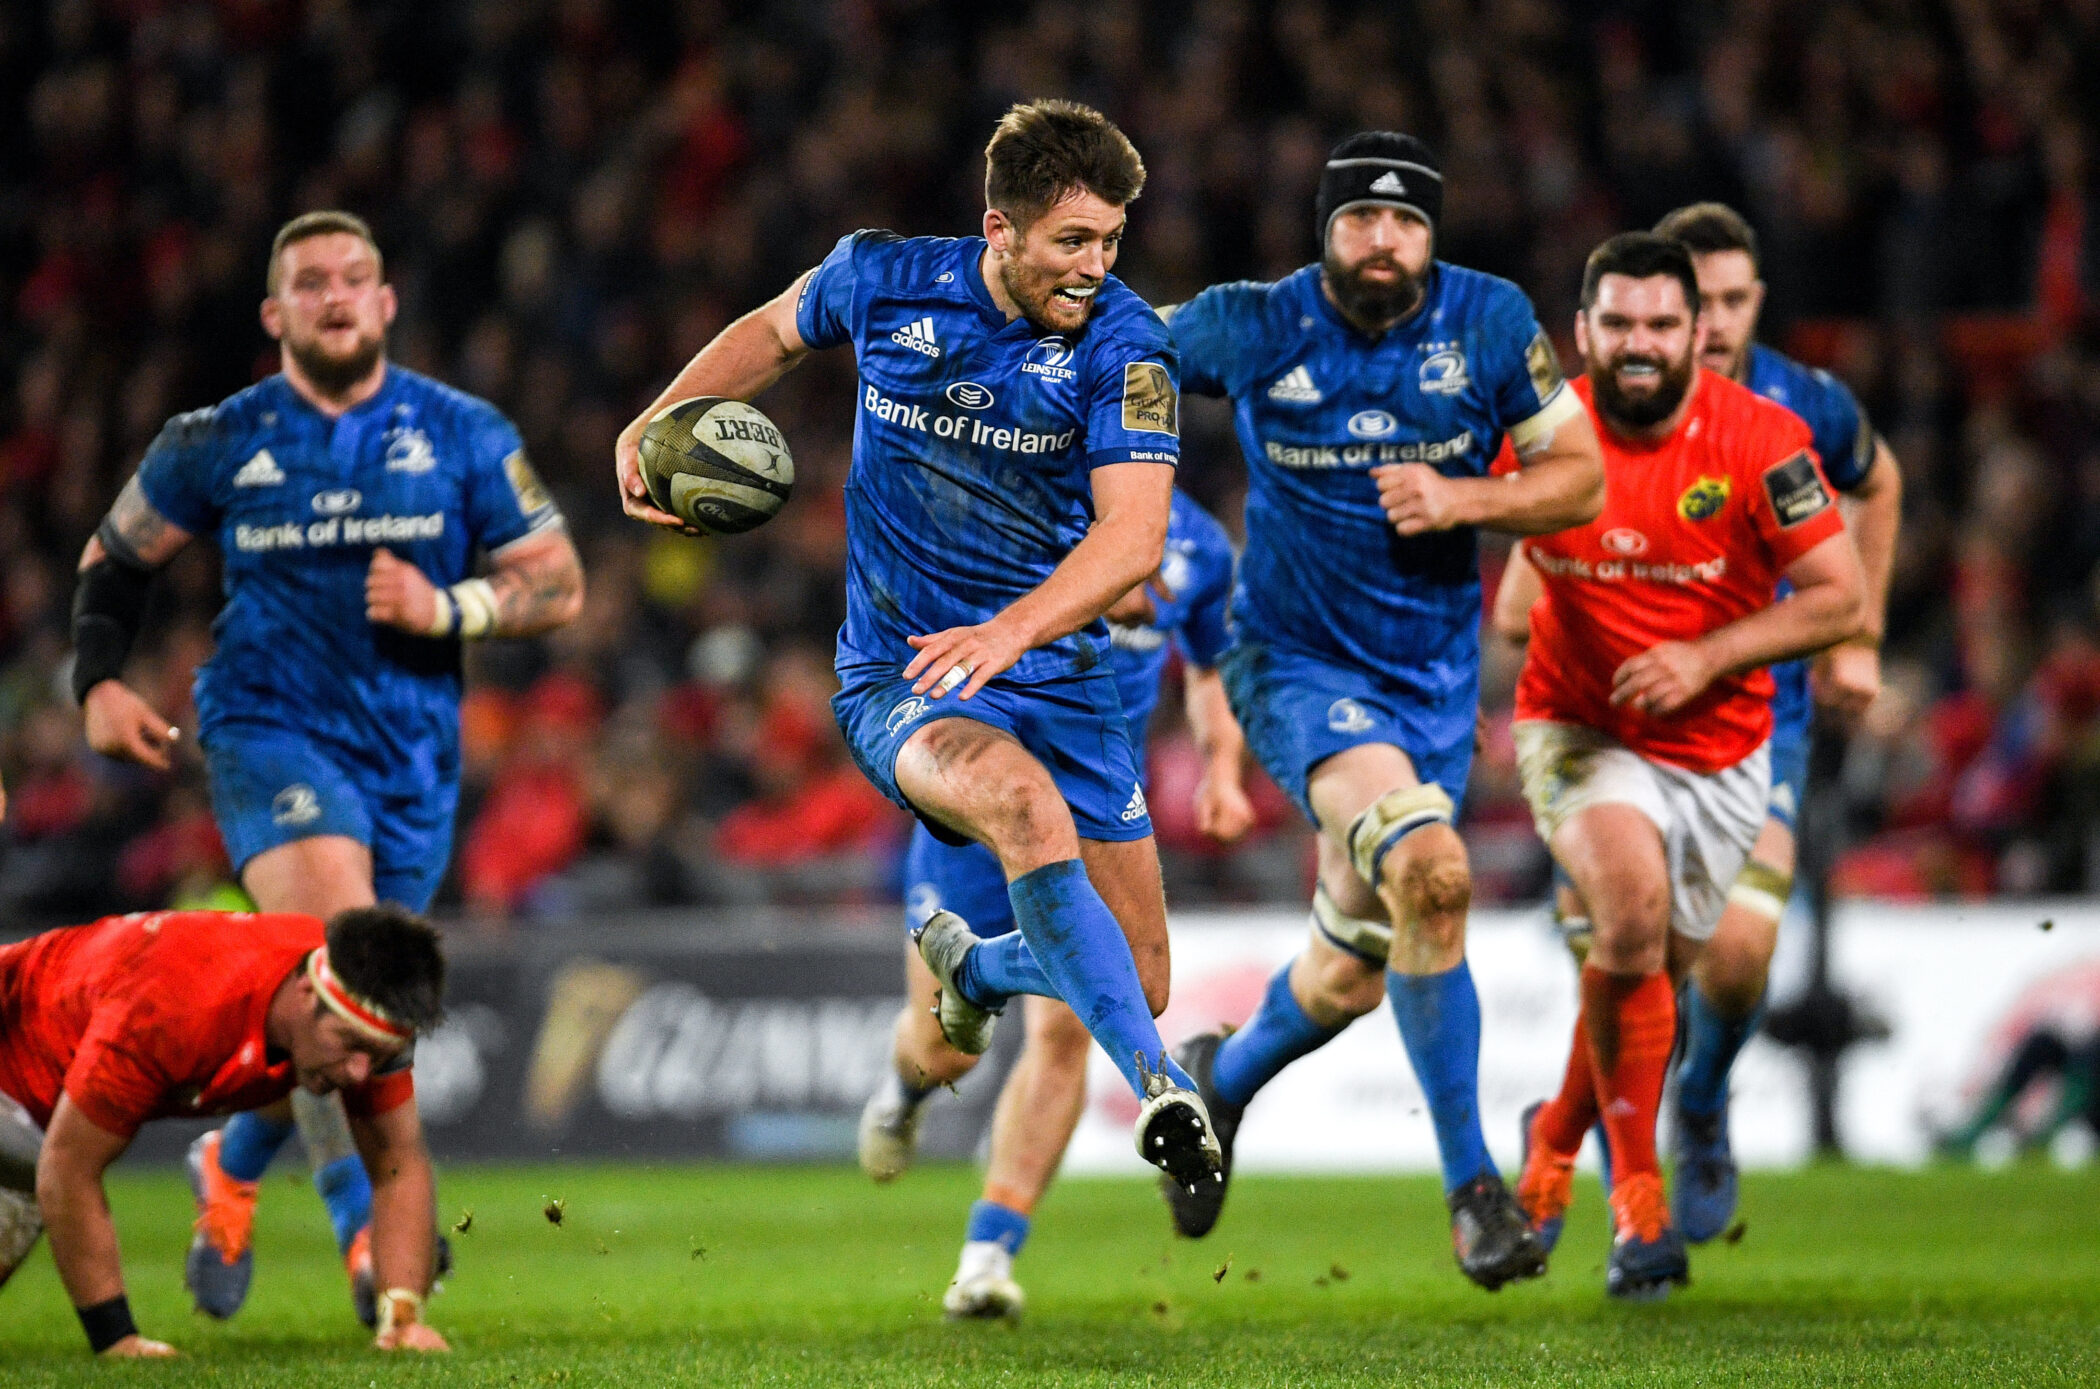 Leinster Rugby | Leinster Rugby v Munster Rugby – Global Broadcast  Information